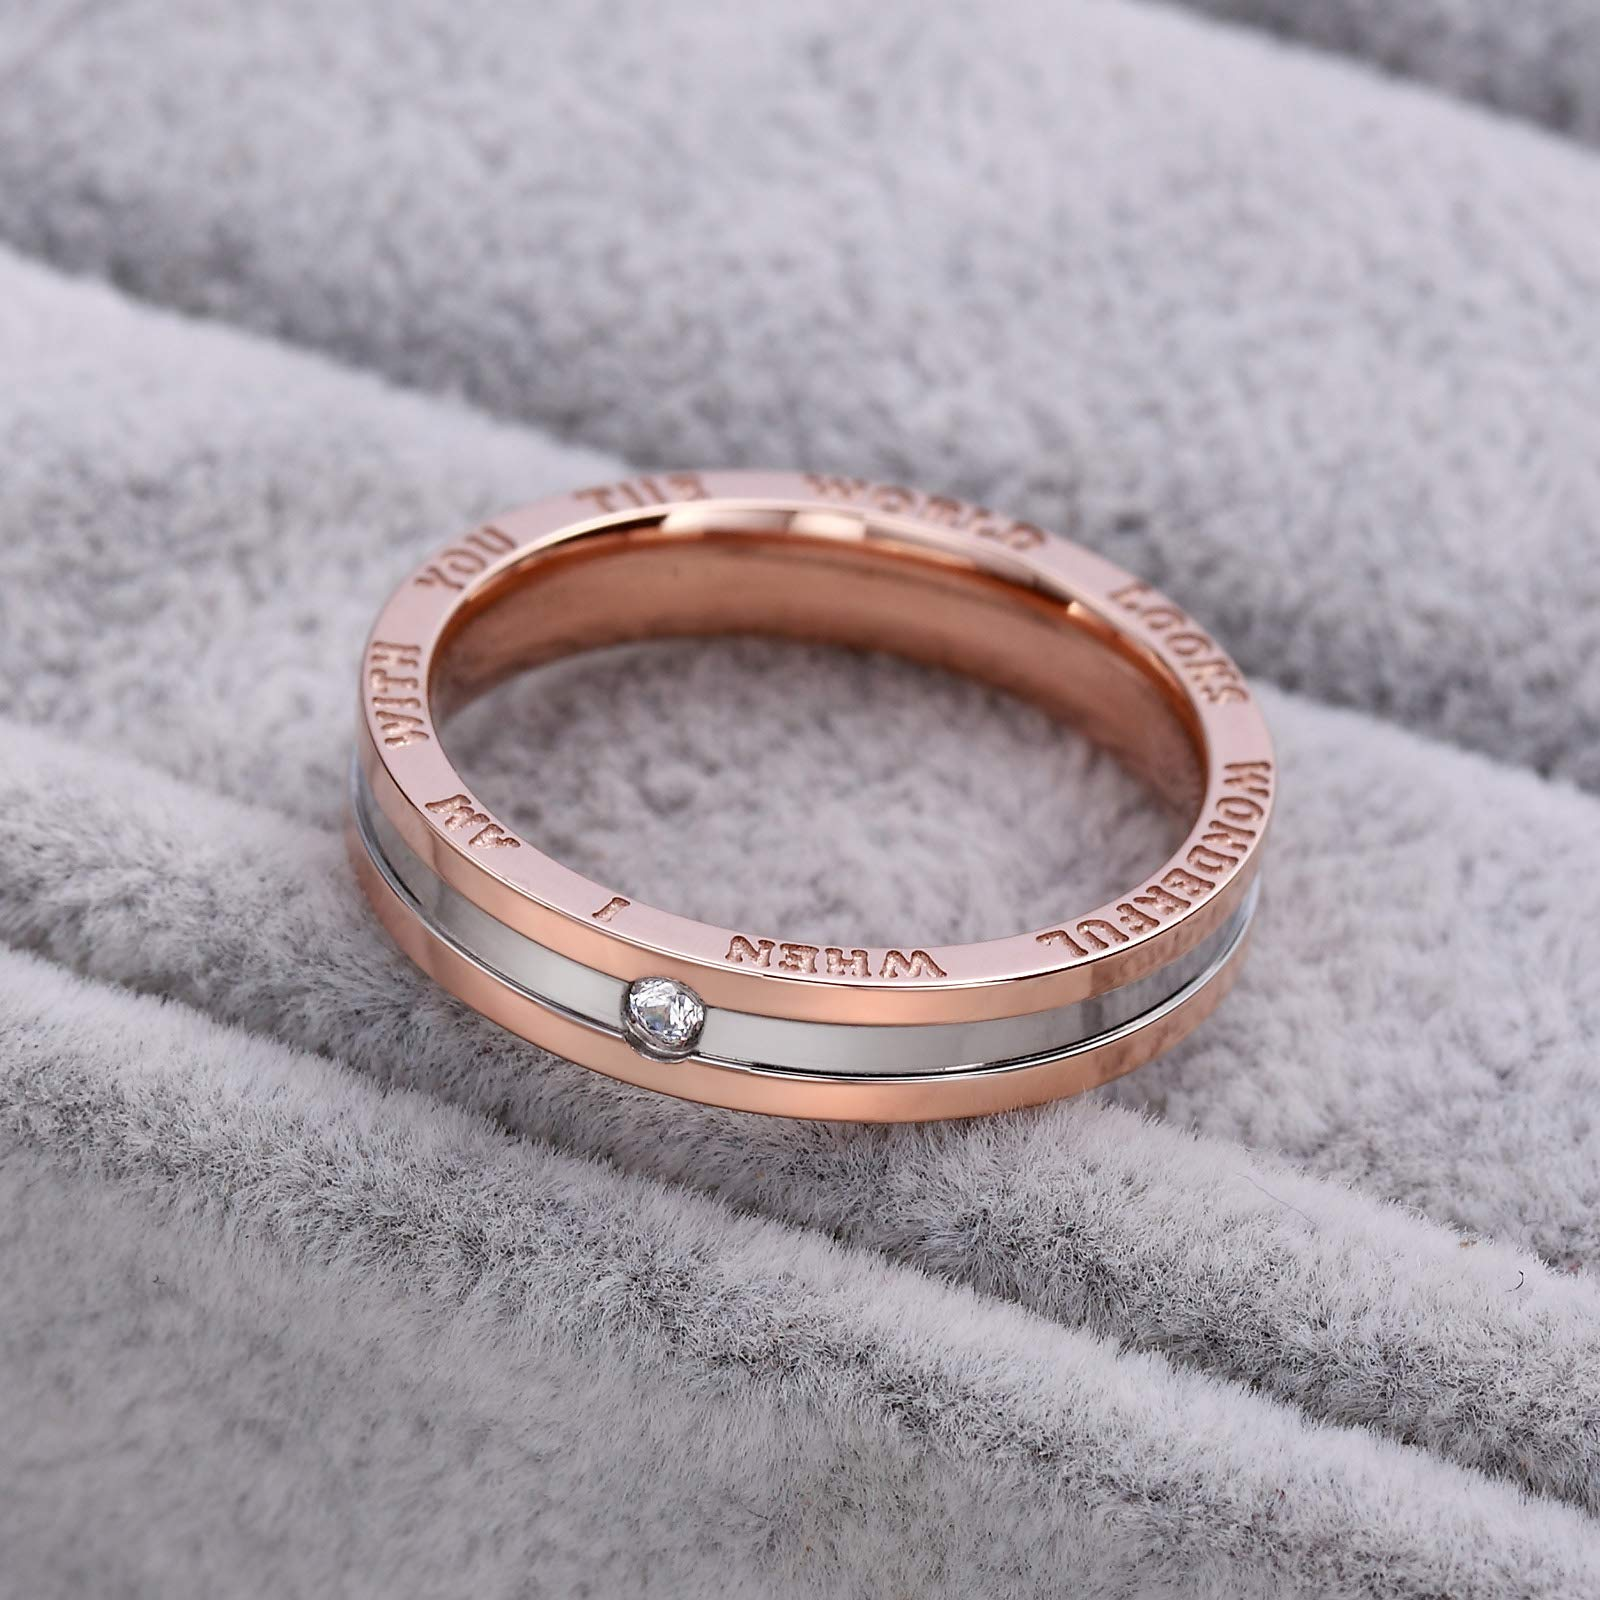 Dec.bells Silver Rose Gold Two Tone Stainless Steel Promise Ring Band Small Ring for Her (Size 5) by Dec.bells (Image #6)